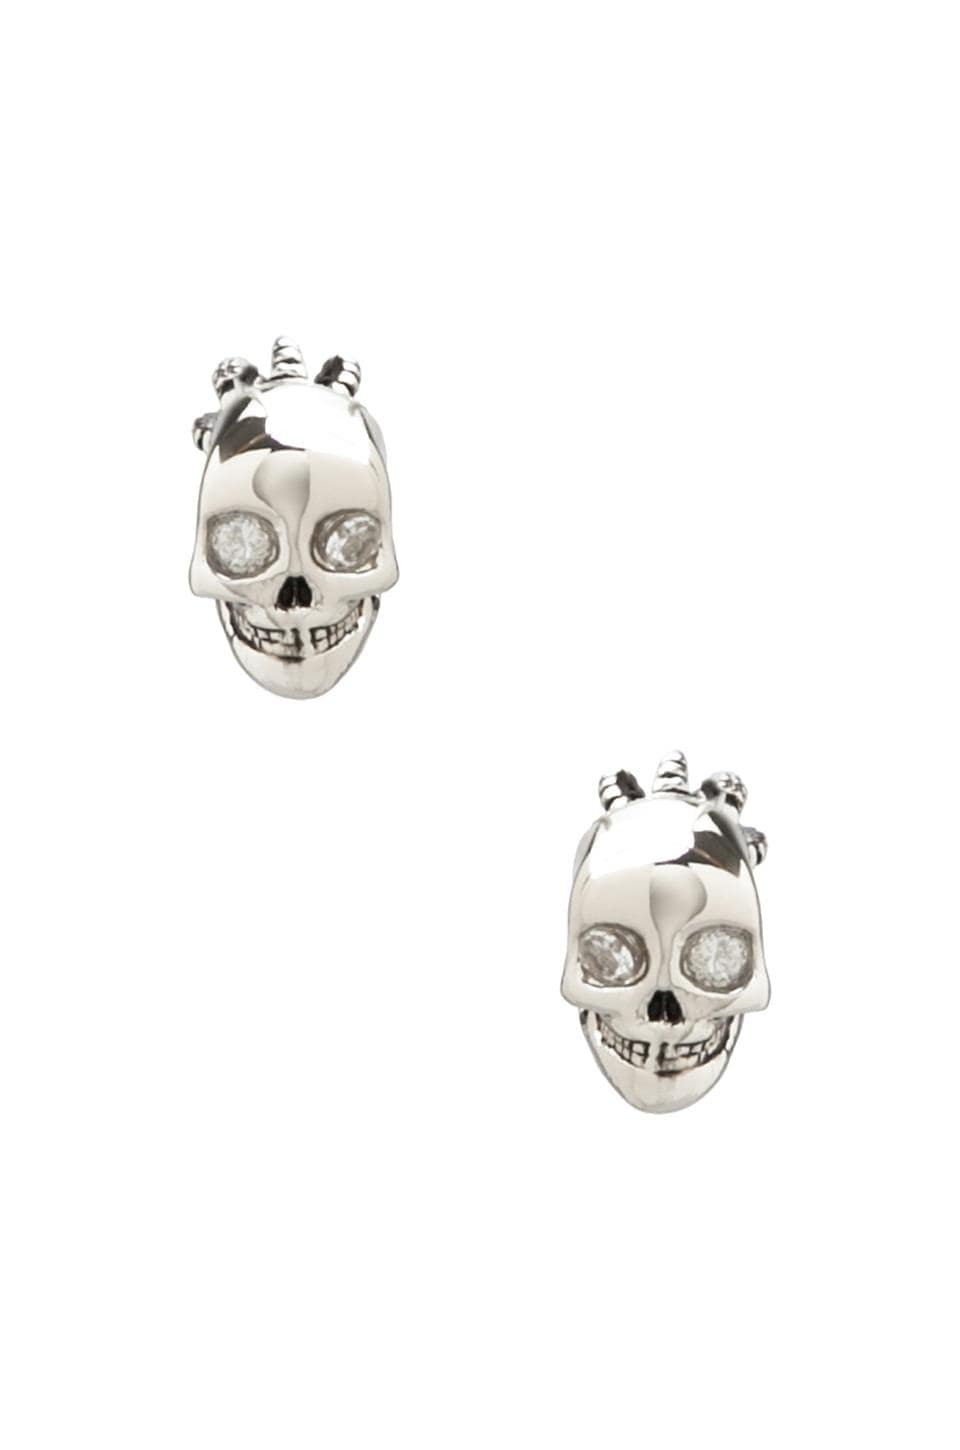 Juicy Couture Skull Stud Earrings in Silver